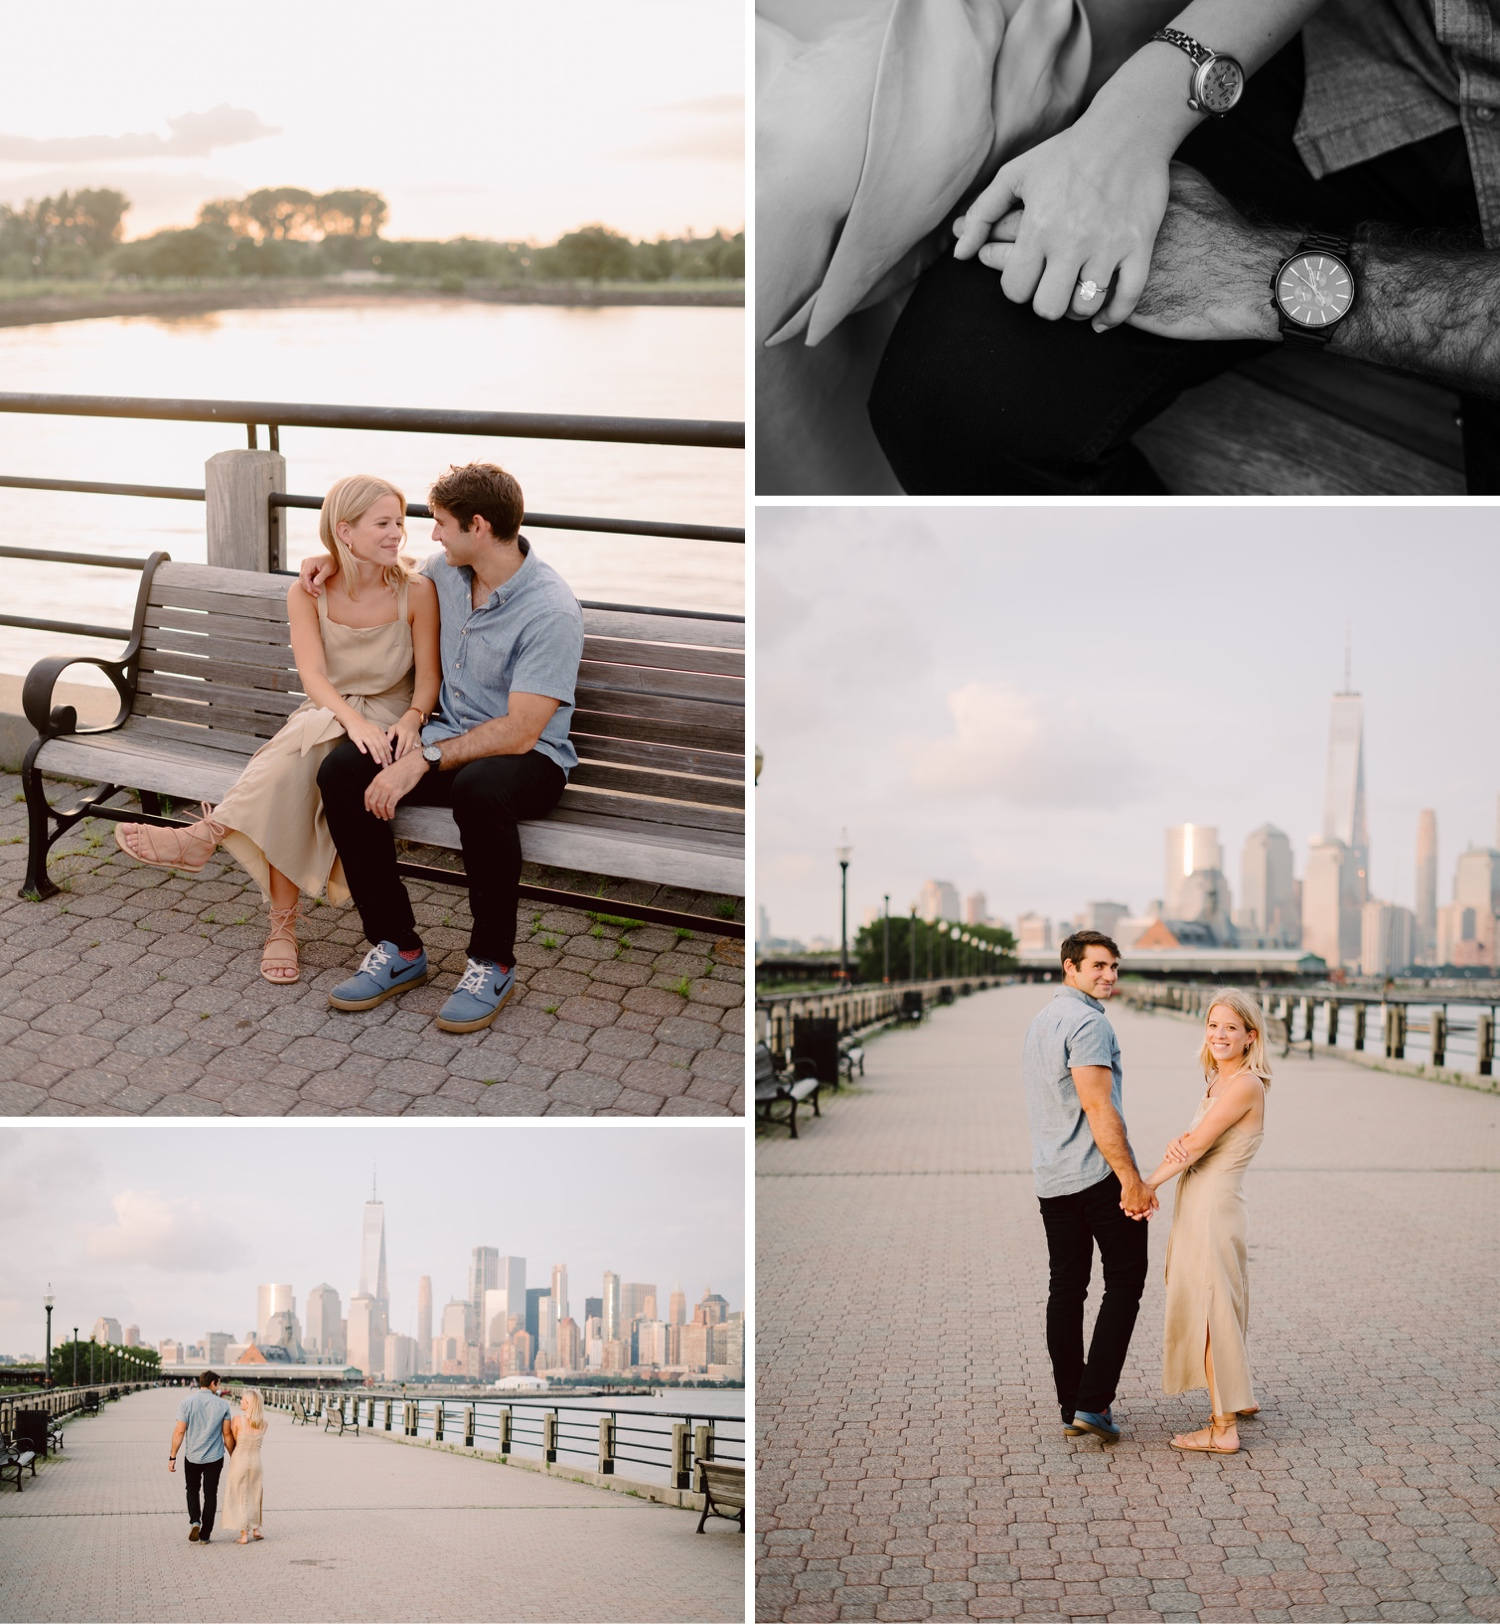 Liberty State Park Engagement Session, Liberty State Park Engagement Photos, Liberty State Park Engagement Pictures, Liberty State Park Engagement Session Spots, Liberty State Park Engagement, Liberty State Park Engagement Photographer, Jersey City Engagement Session, Jersey City Engagement Photographer, Jersey City Wedding Photographer, Jersey City Wedding Photographers, Jersey City Engagement Locations